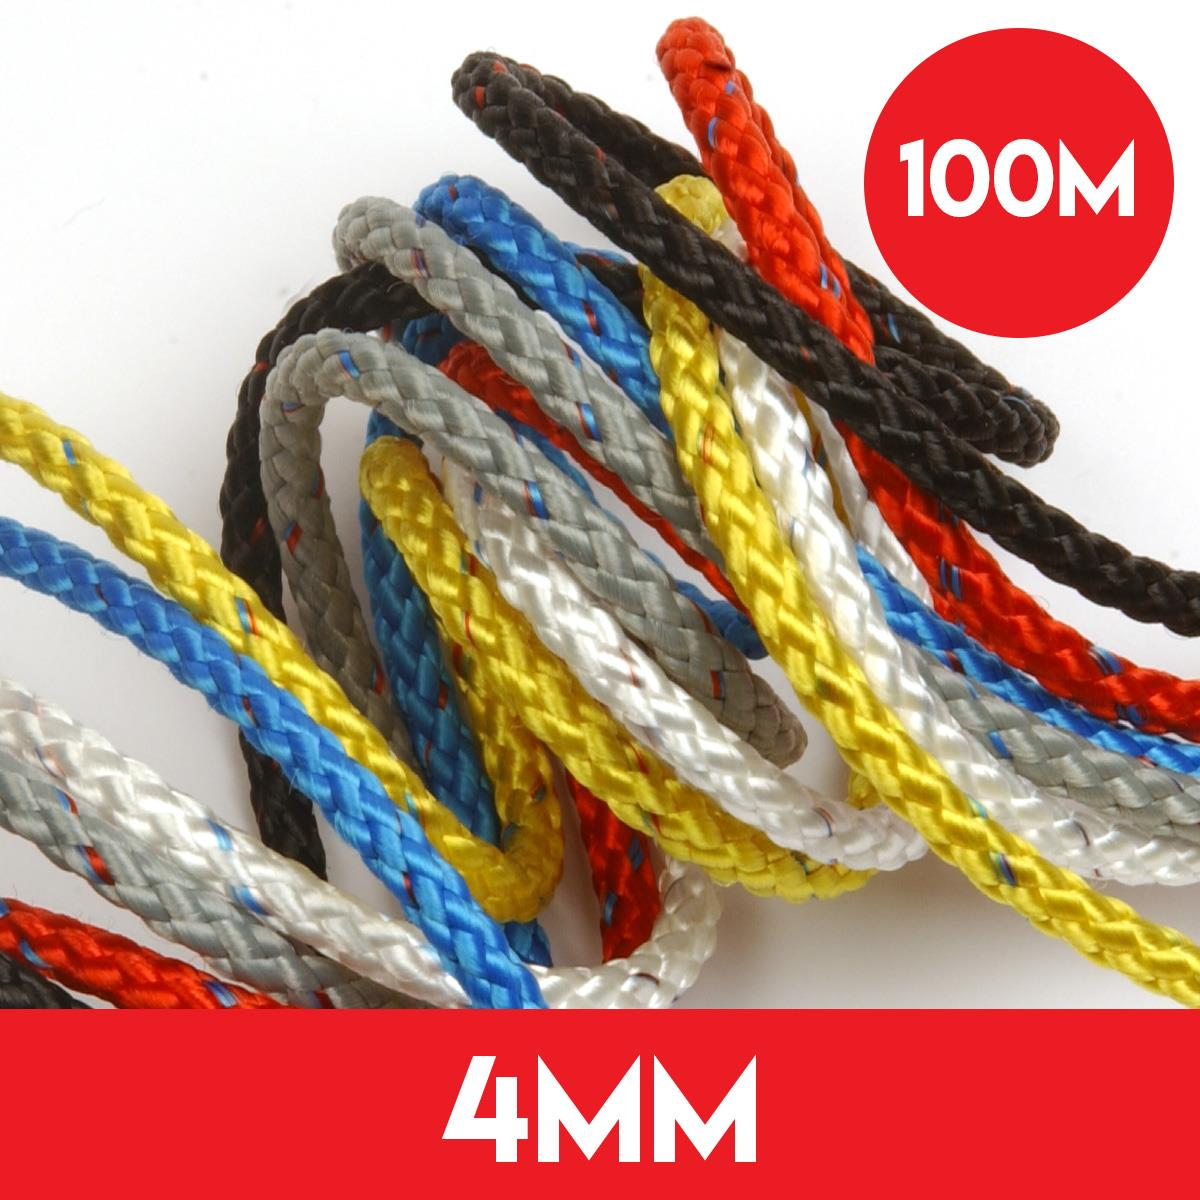 100m of 4mm 8 Plait Pre Stretched Rope